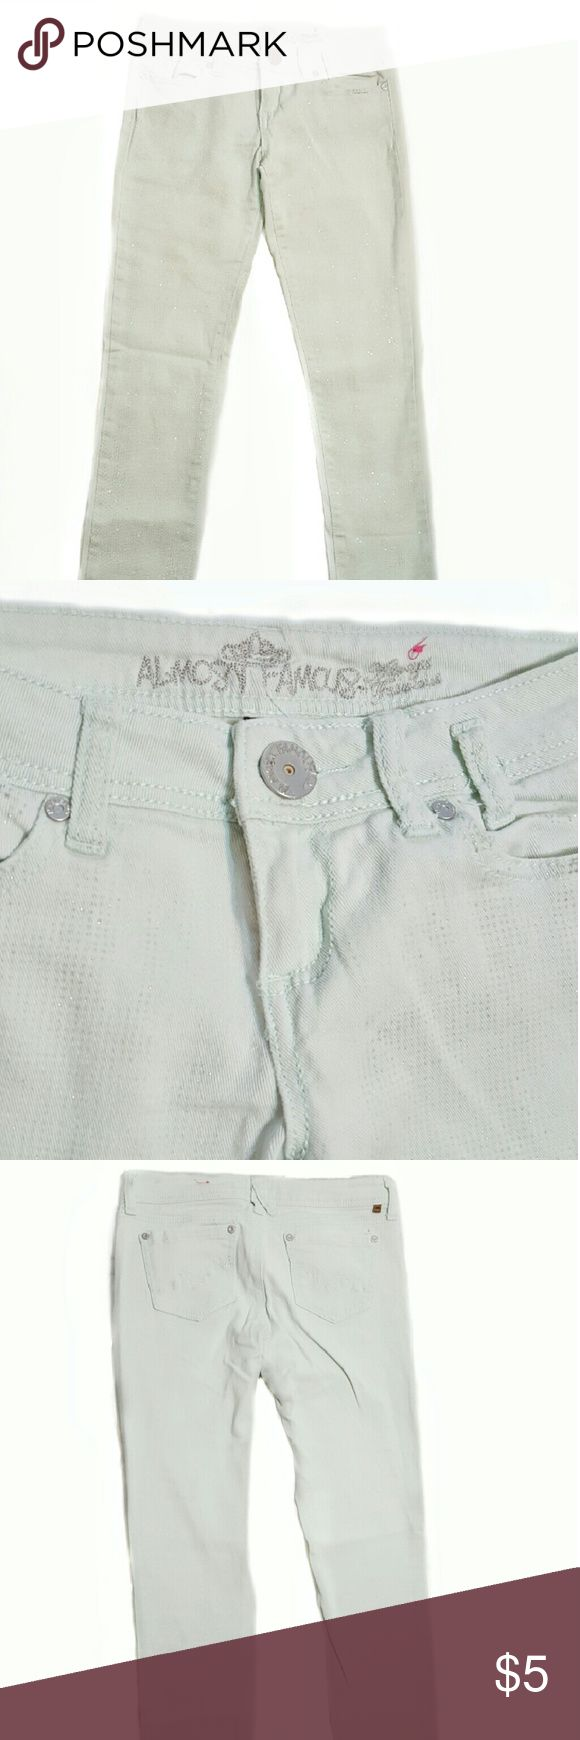 Light Mint Jeans with SPARKLE USED Good Condition  Size: 5  Flaws: Signs of wear -  Mild pilling on inner thigh area. Almost Famous Pants Skinny